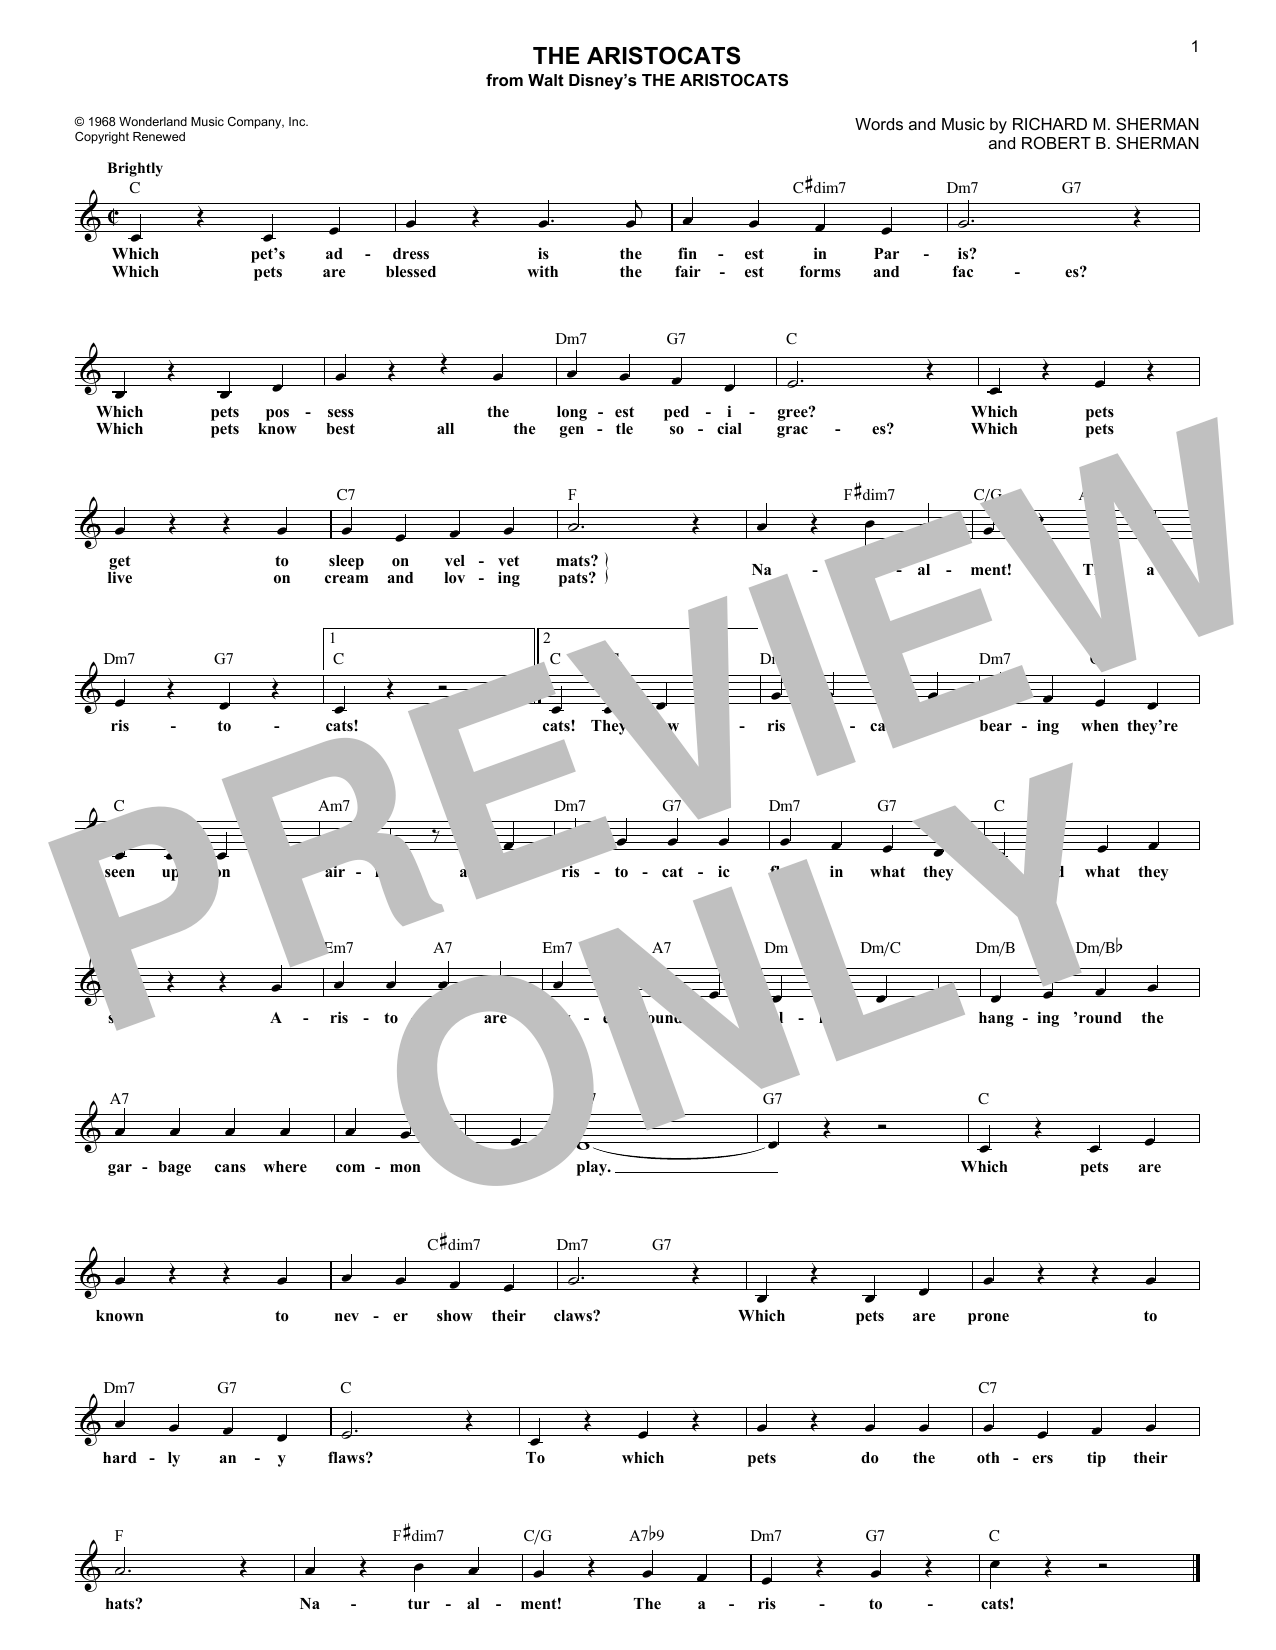 Richard M. Sherman The Aristocats sheet music notes and chords. Download Printable PDF.